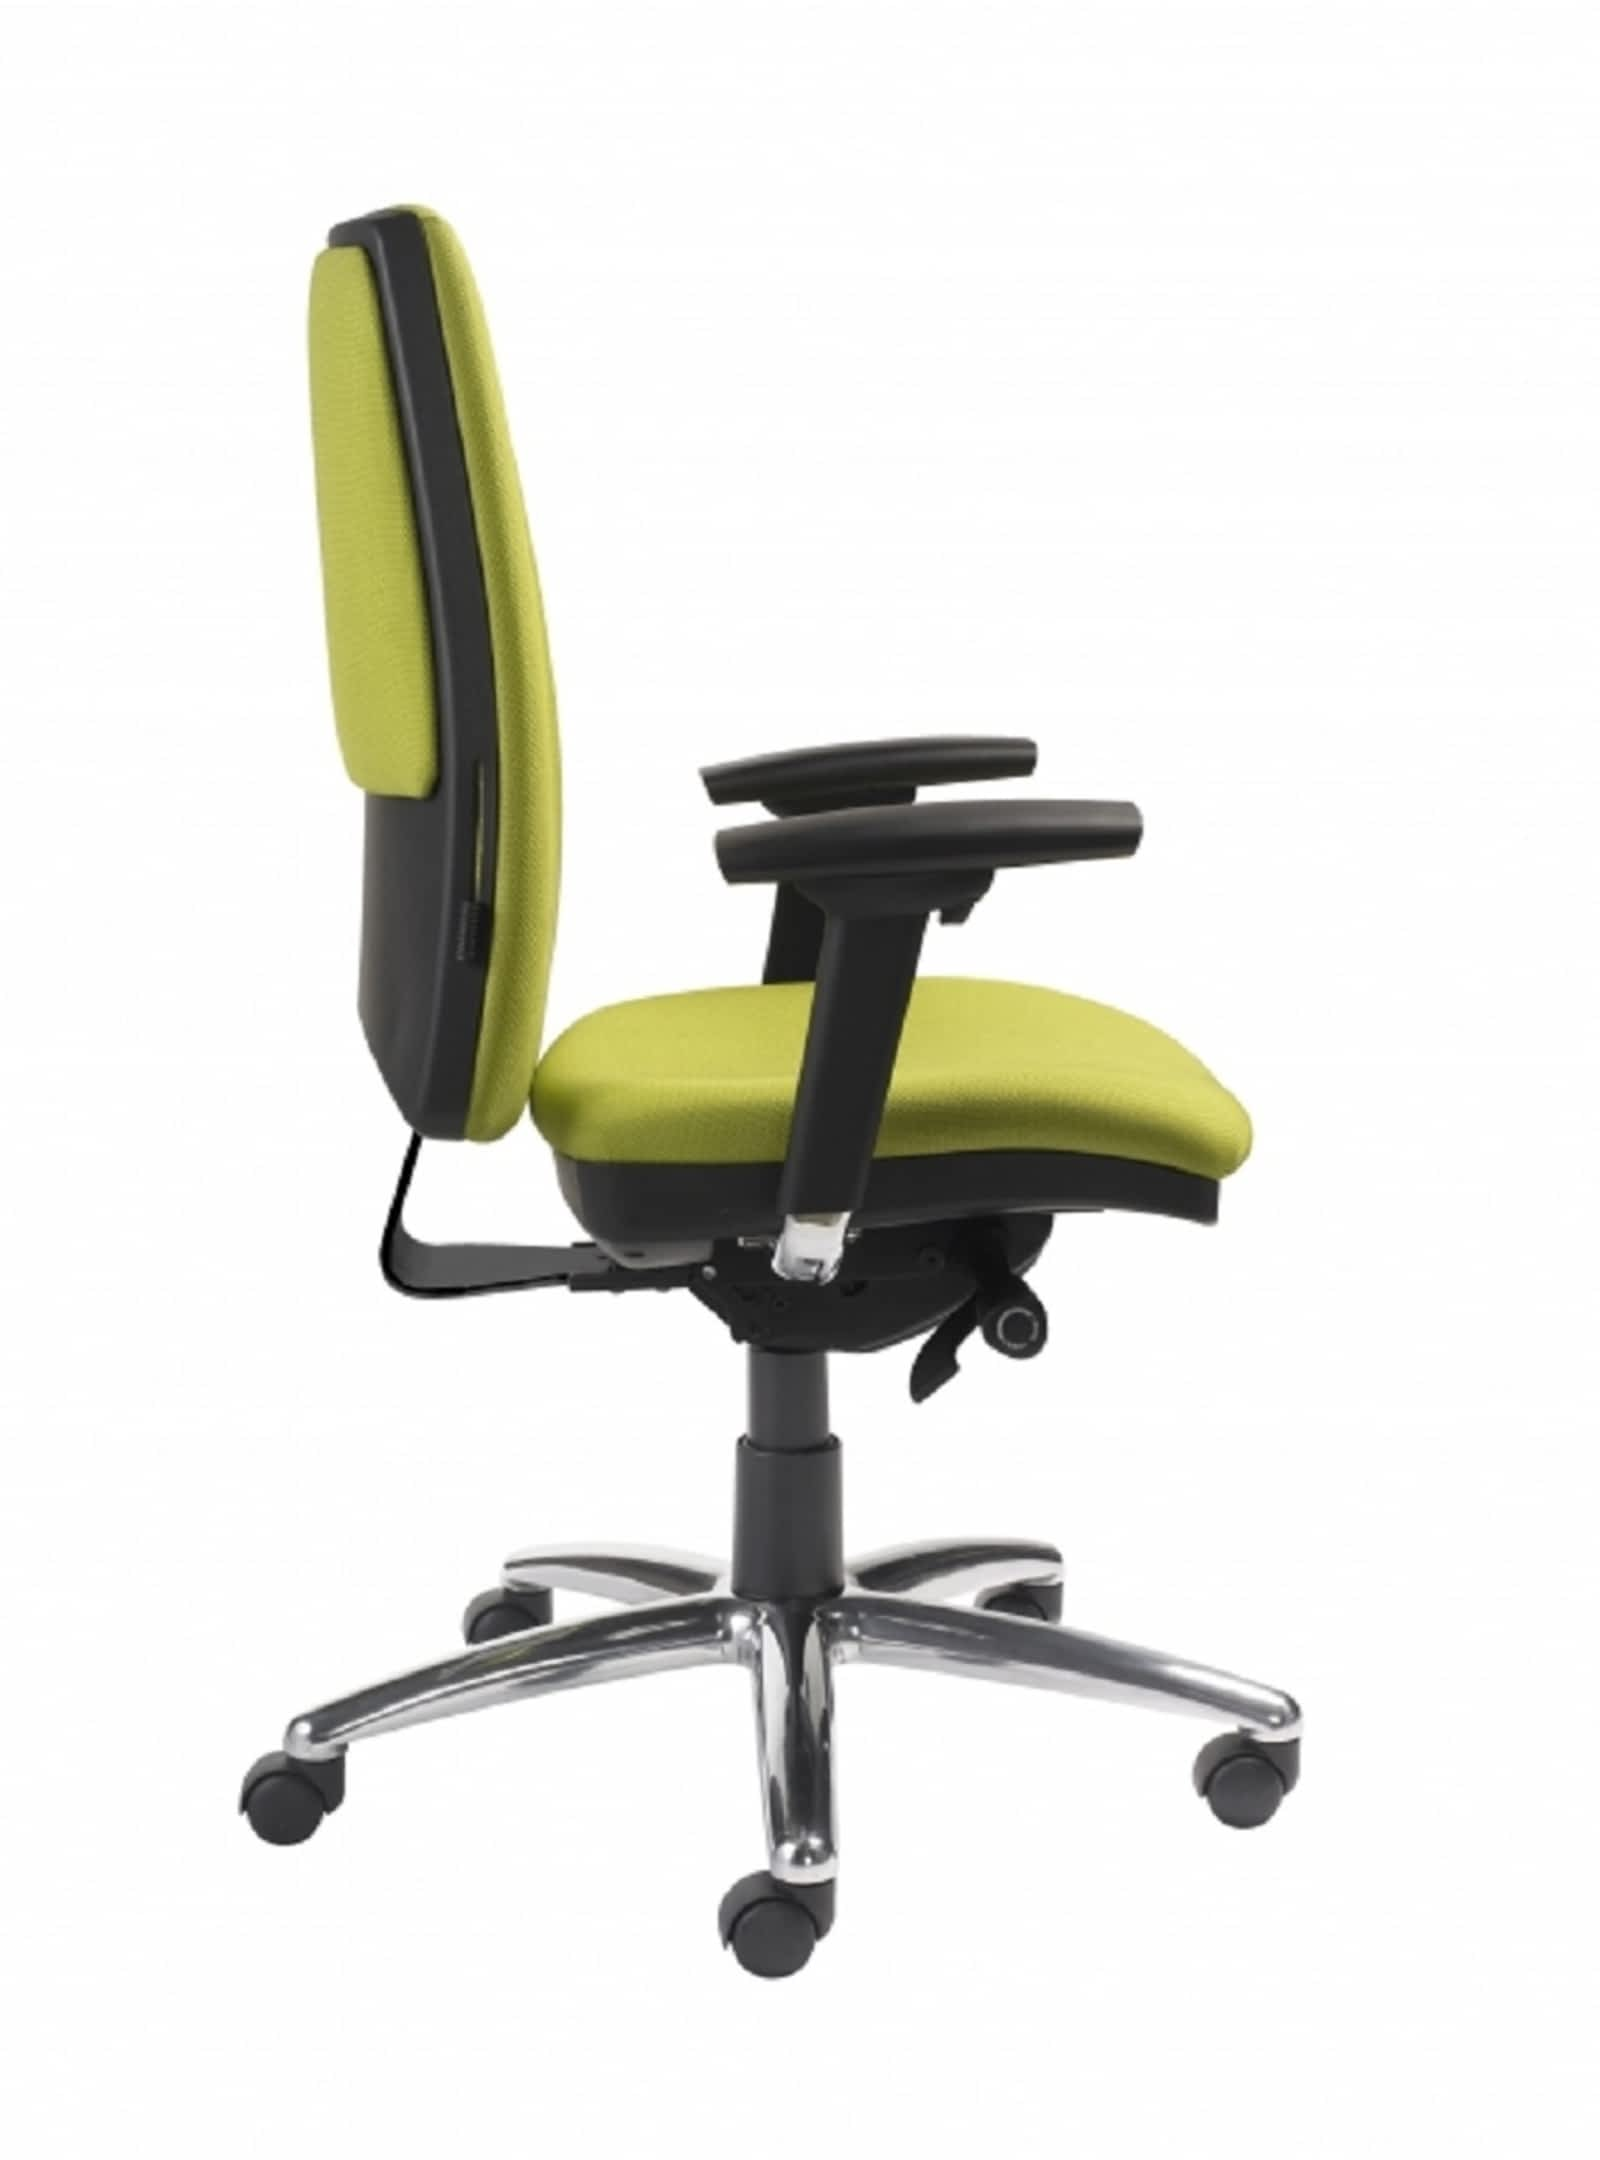 Office Chairs Winnipeg Cunningham Business Interiors Ltd Opening Hours 1340 Sargent